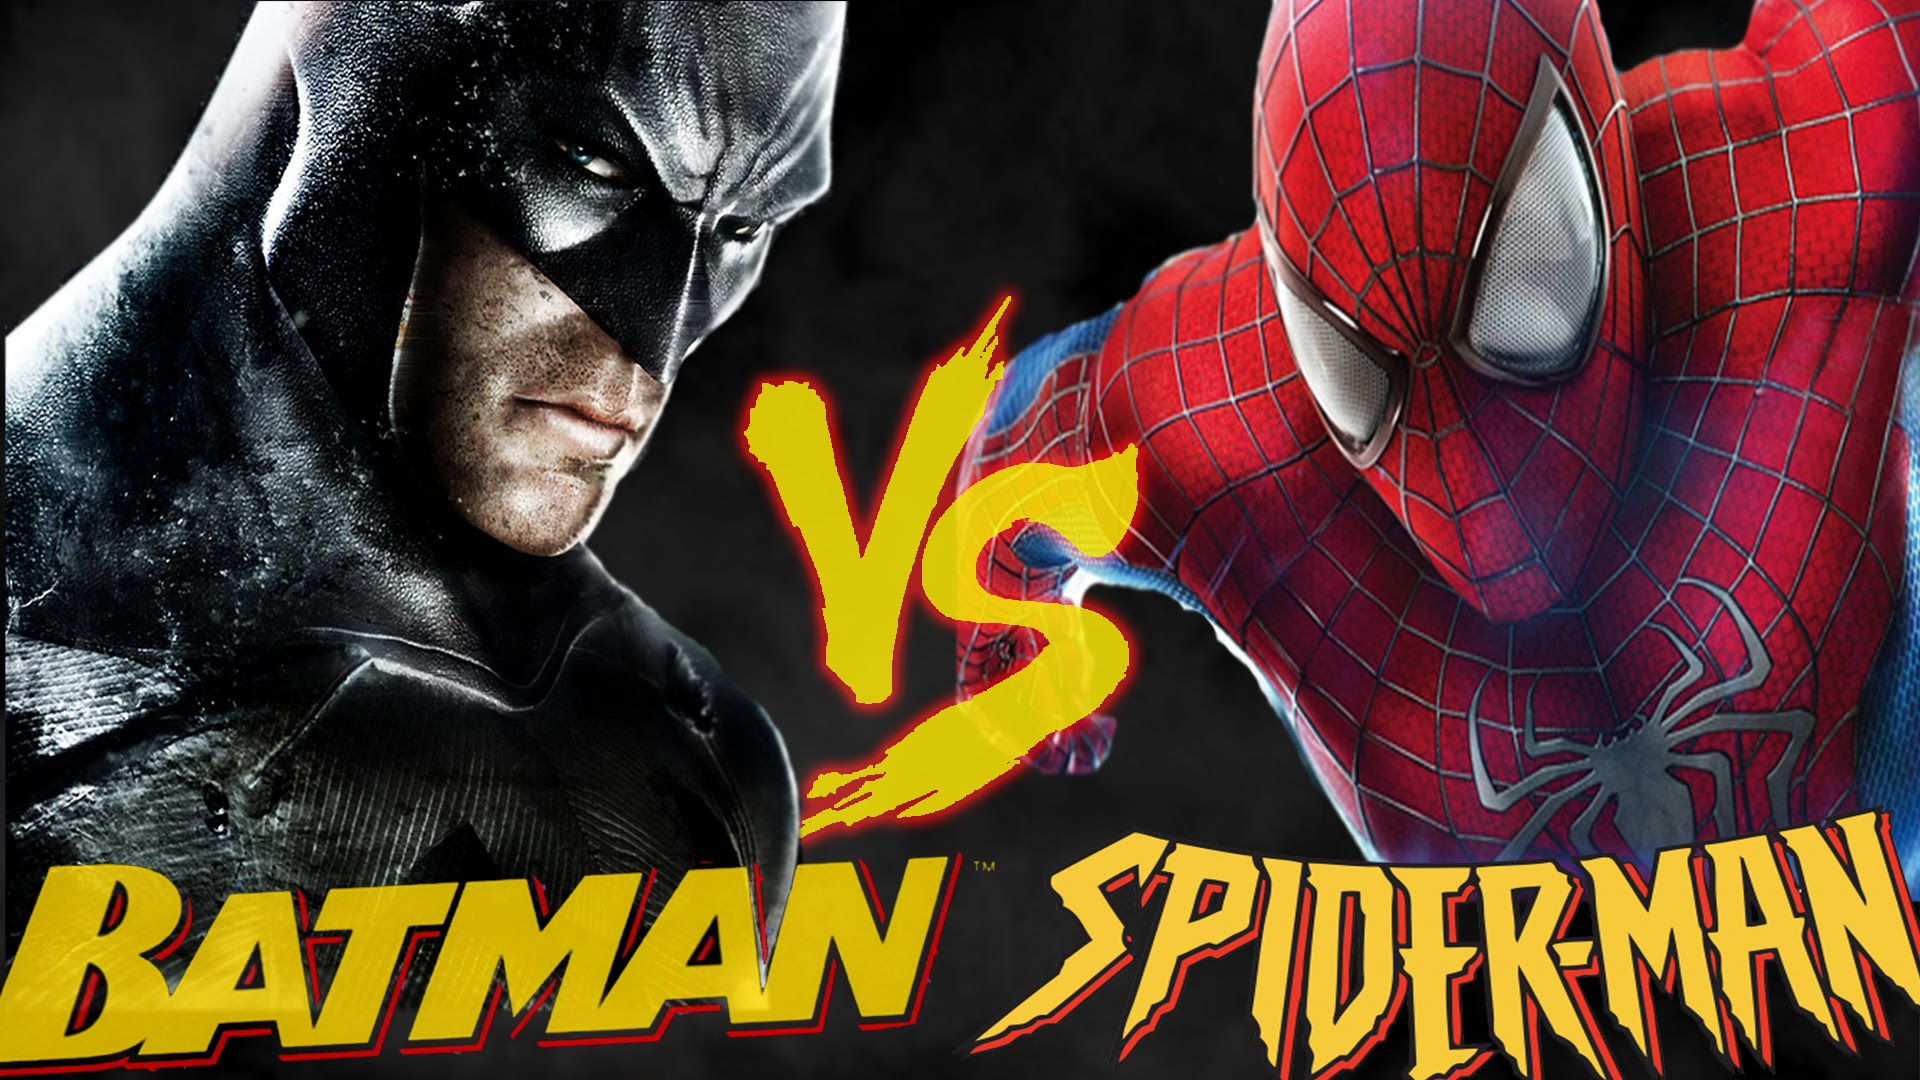 Who Would Win a Battle Between Batman and Spiderman? | No BS Job Search Advice Radio